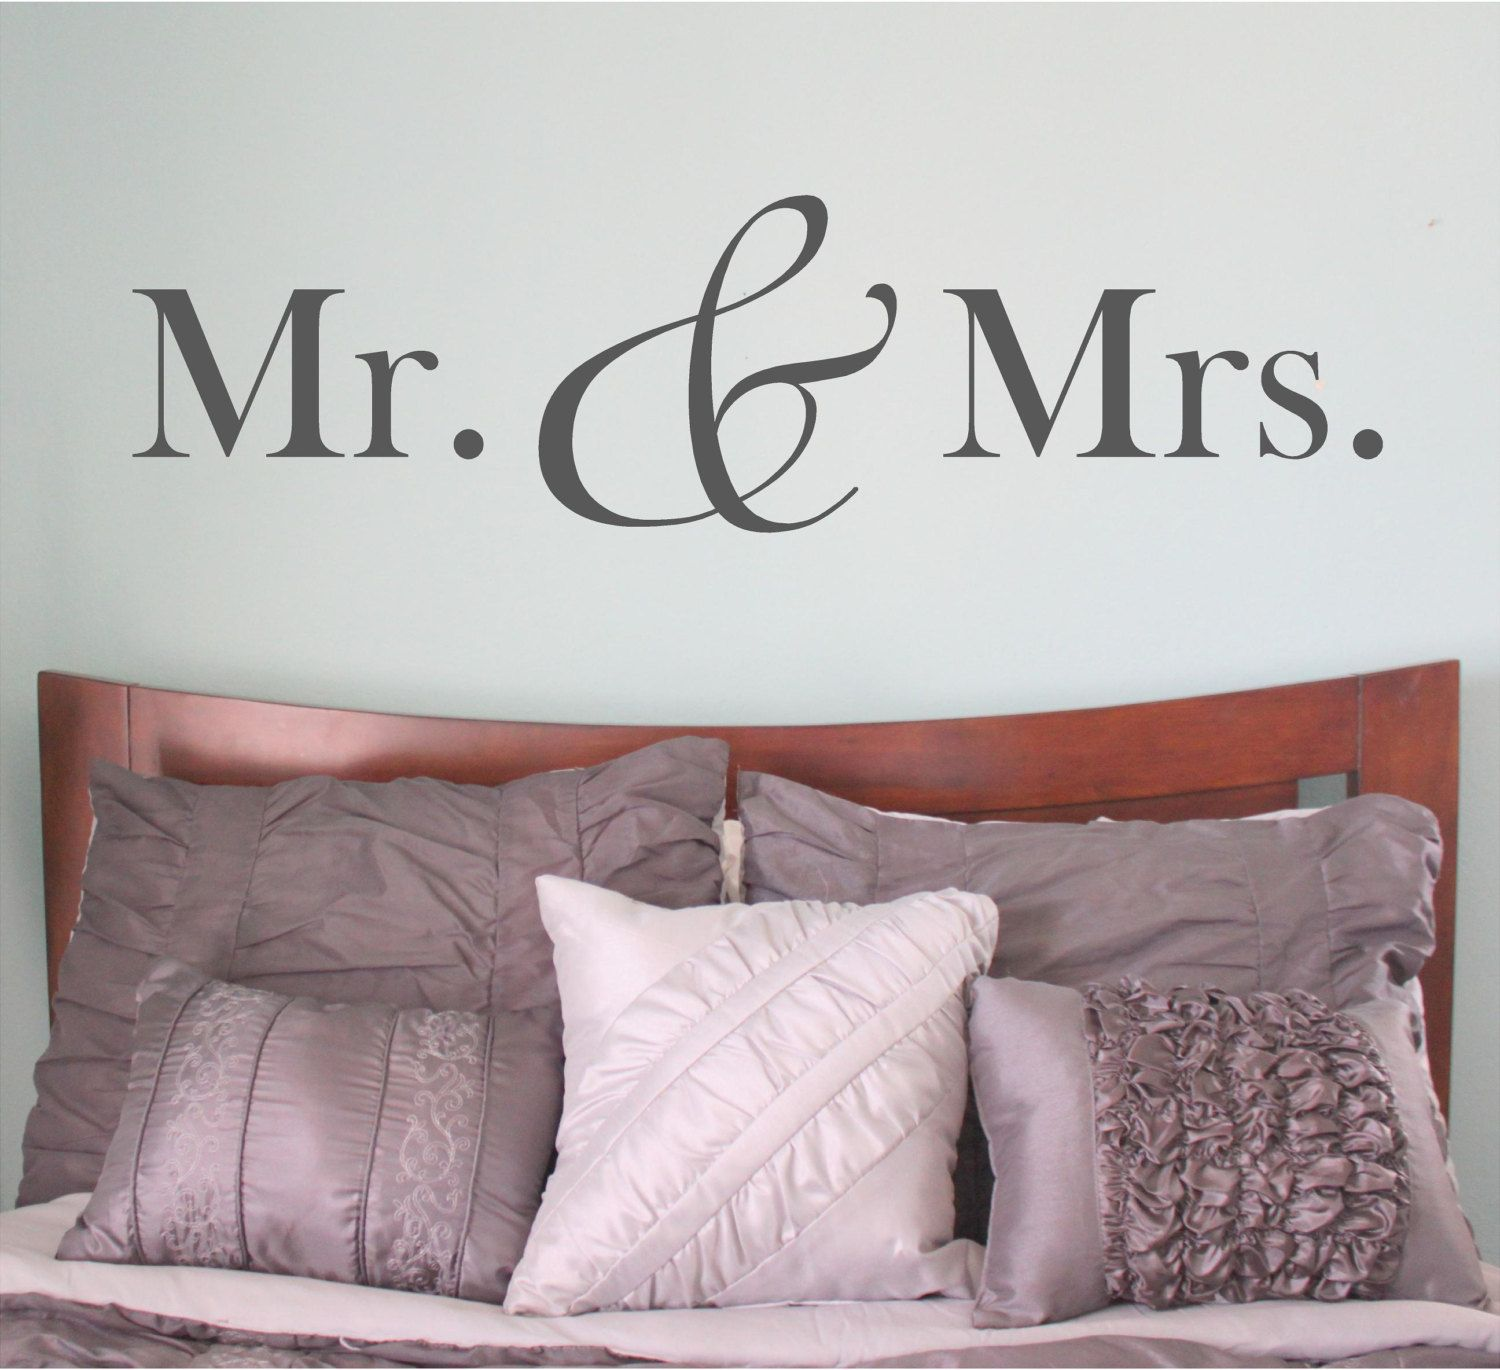 Mr and Mrs   Mr and Mrs Sign   Mr and Mrs Wall Decal   bedroom. Mr and Mrs   Mr and Mrs Sign   Mr and Mrs Wall Decal   bedroom